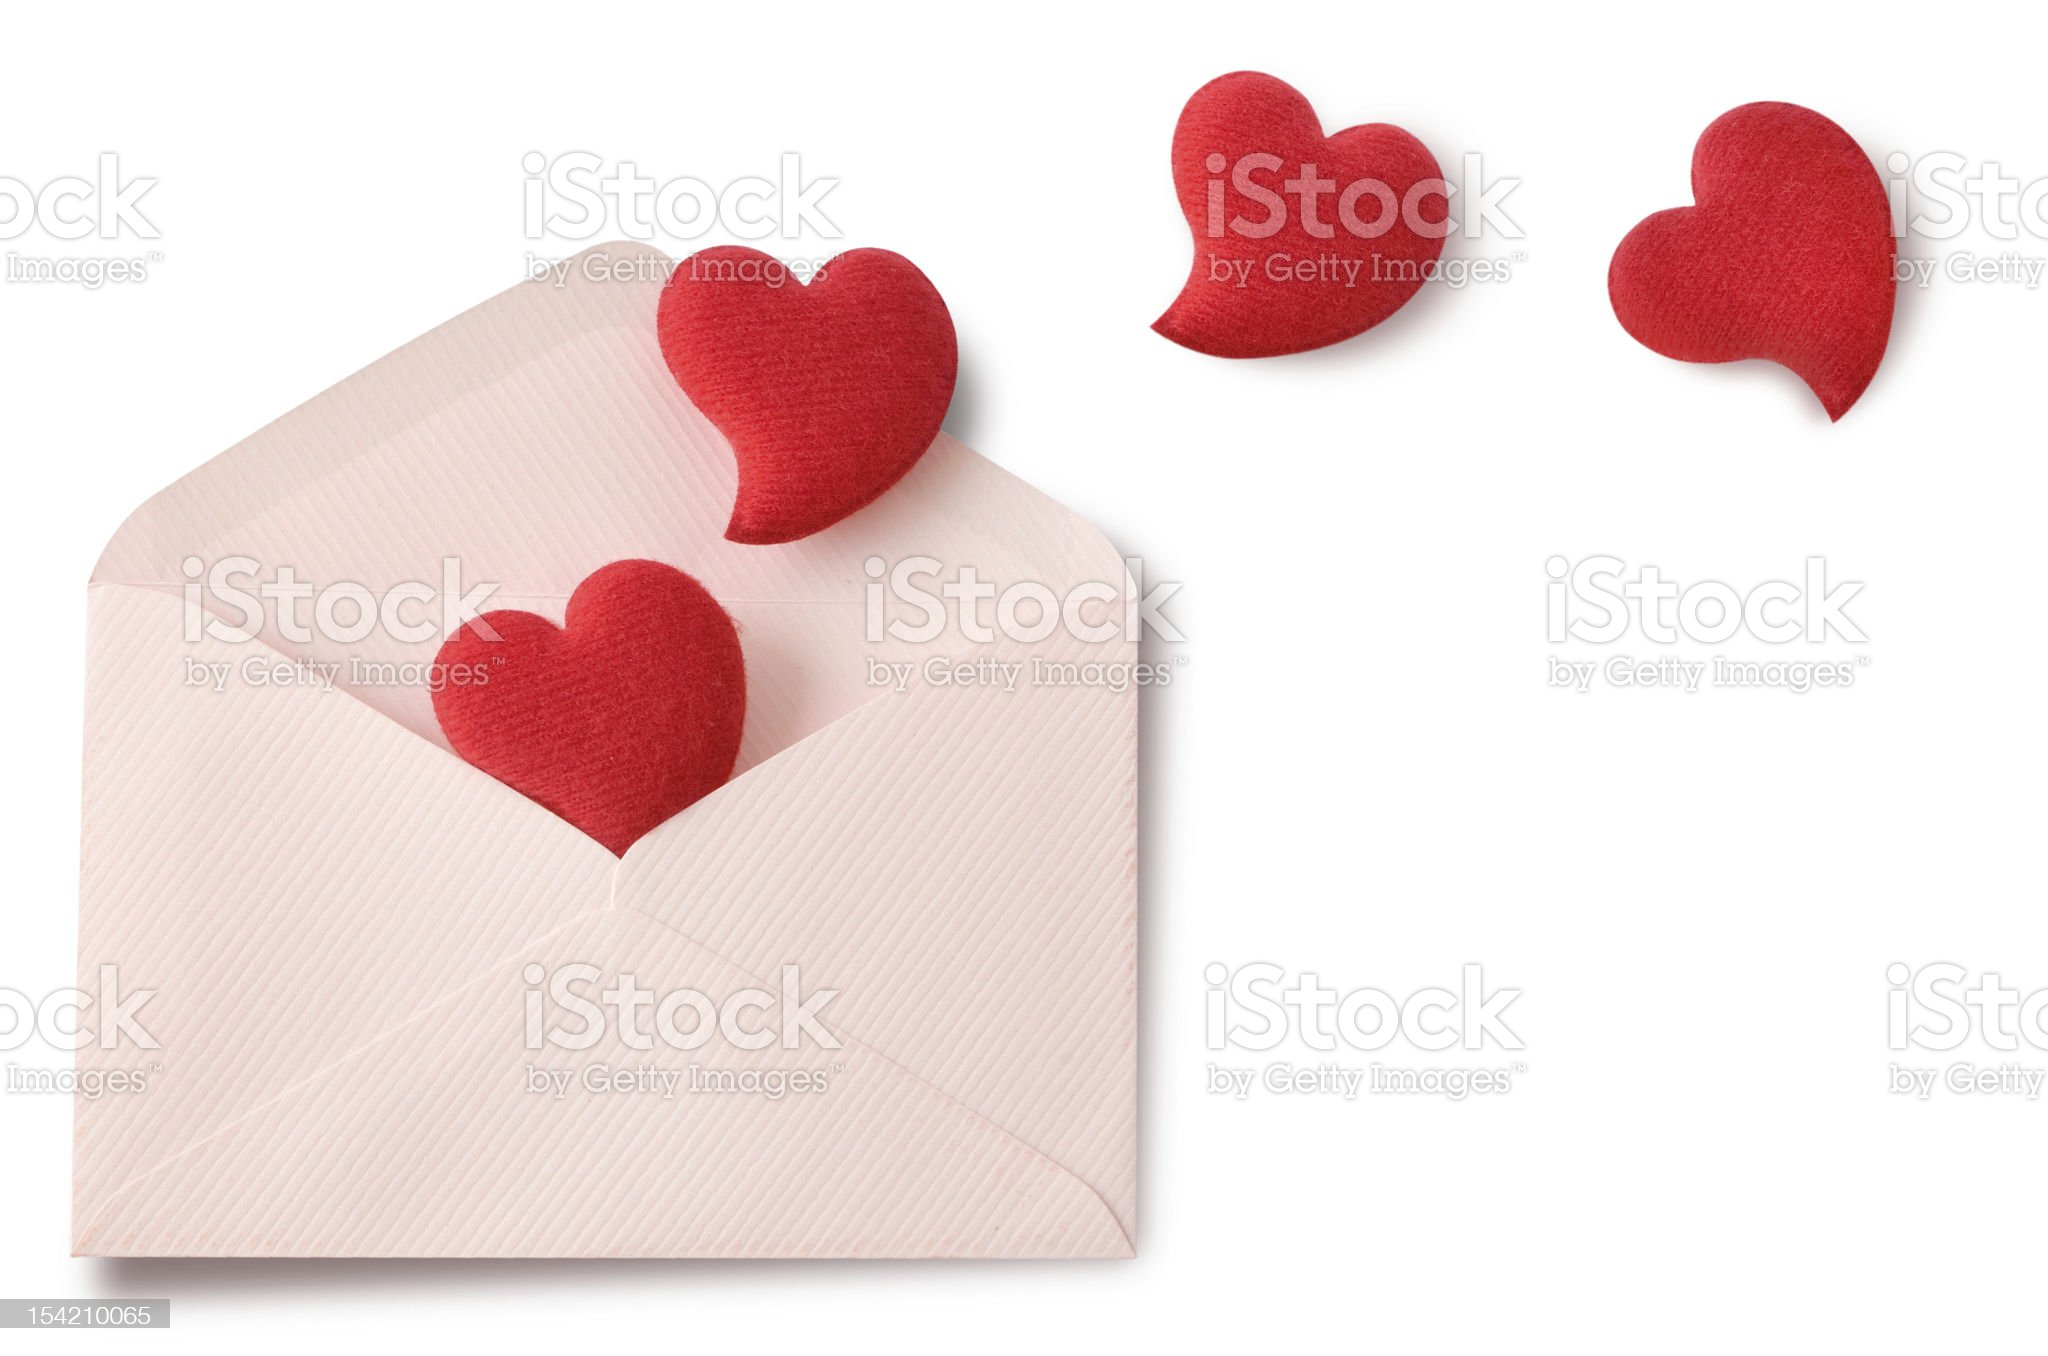 Heart in envelope royalty-free stock photo